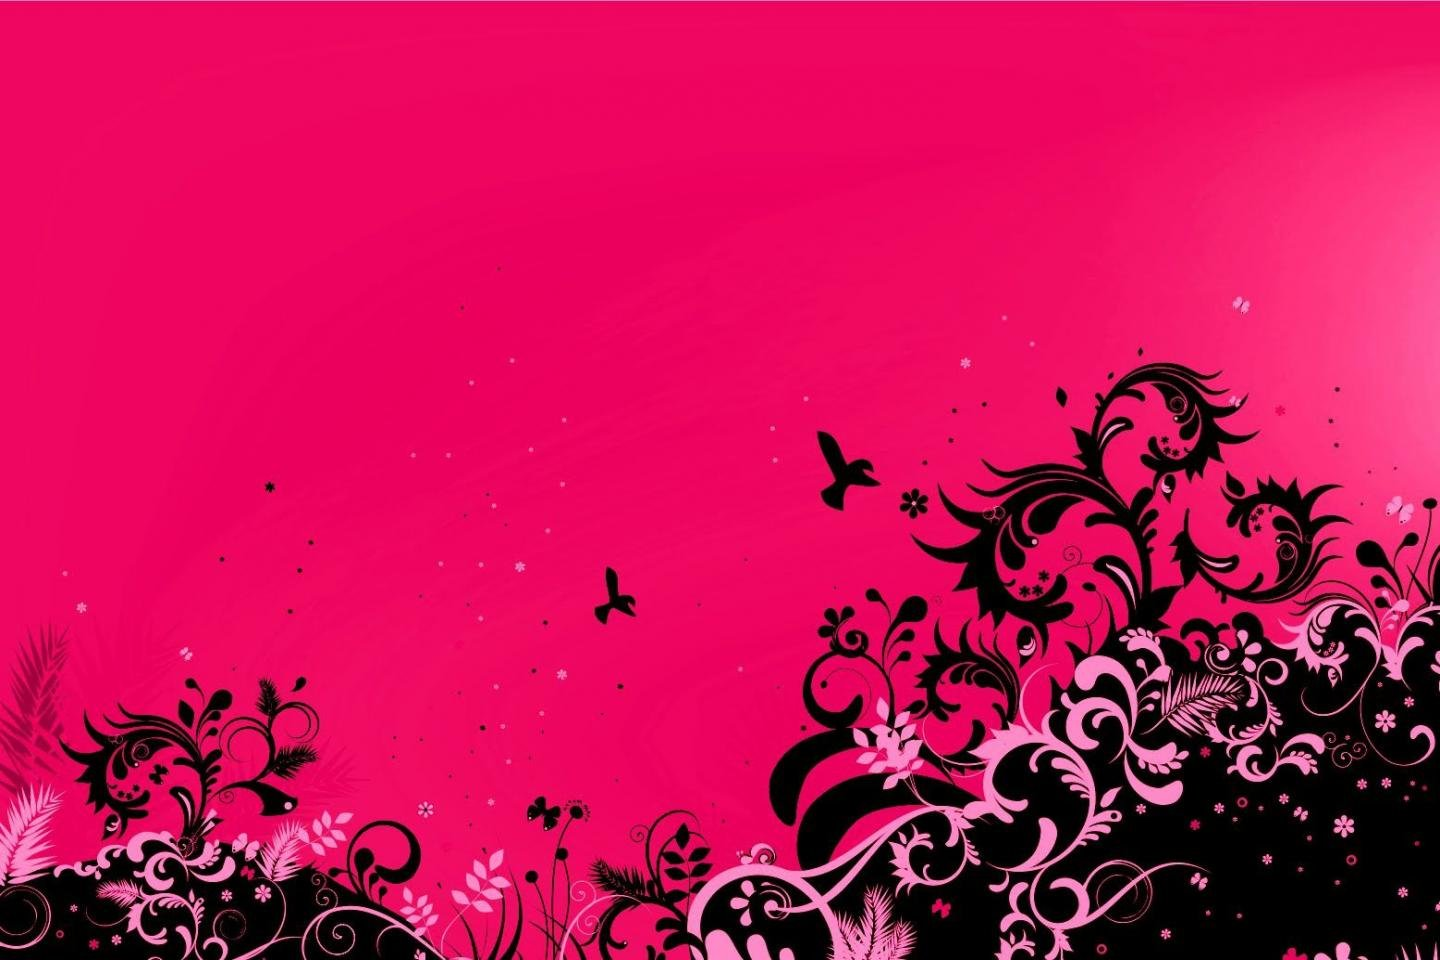 Free download Pink color background ID:145496 hd 1440x960 for PC